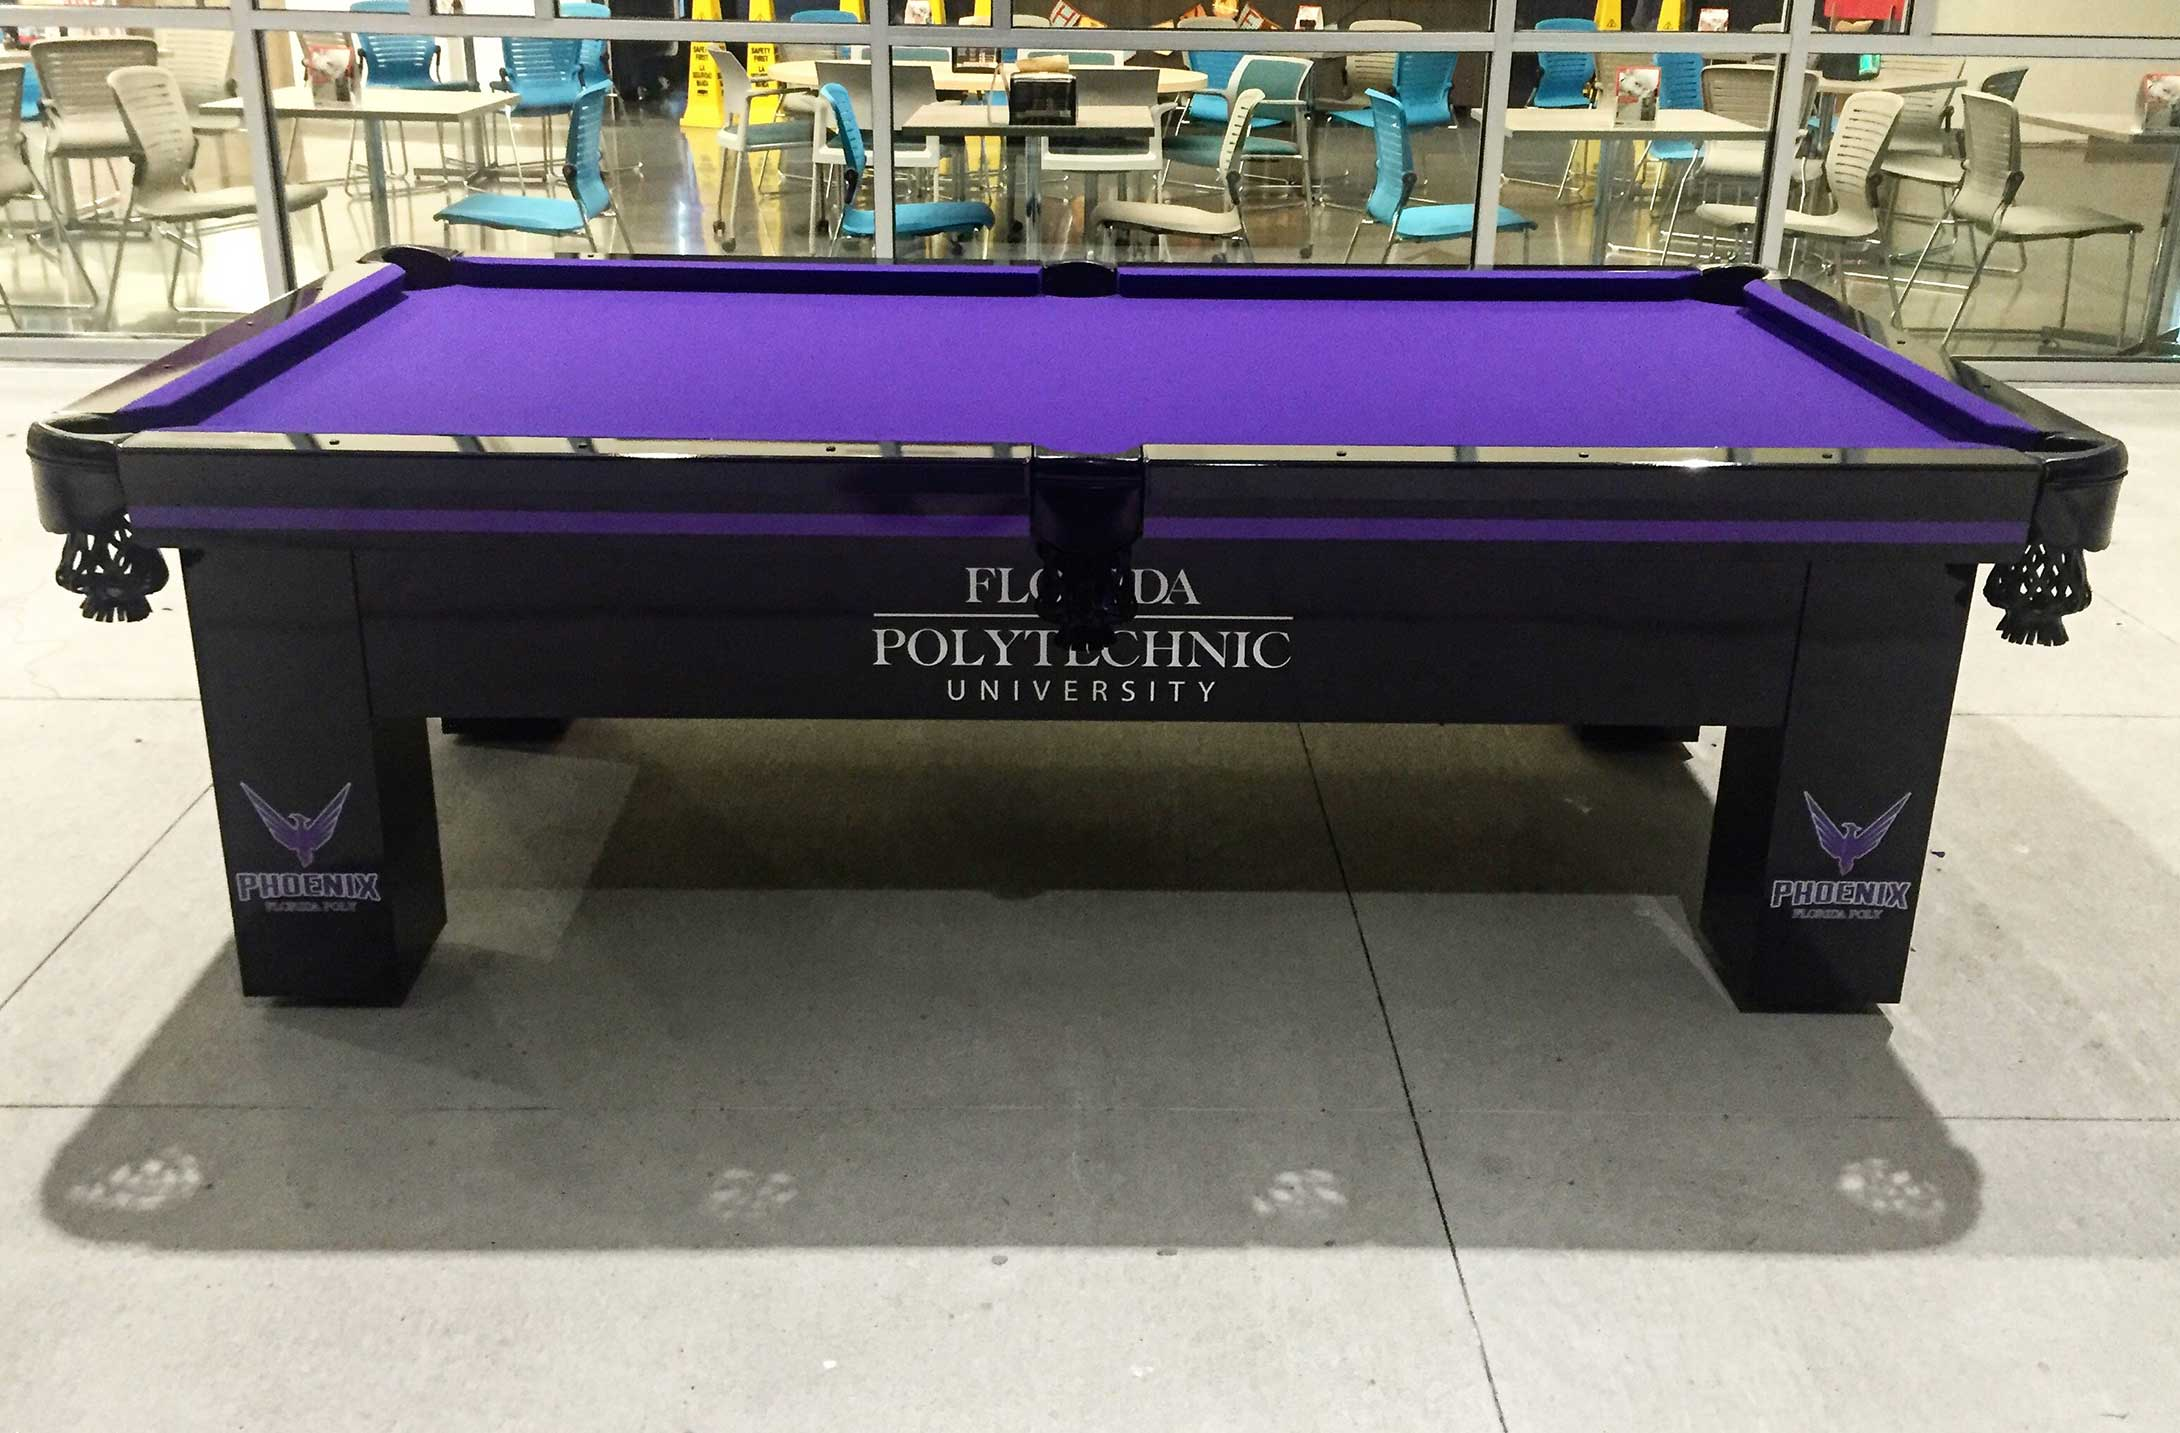 Florida Polytechnic University's custom Orion outdoor pool table